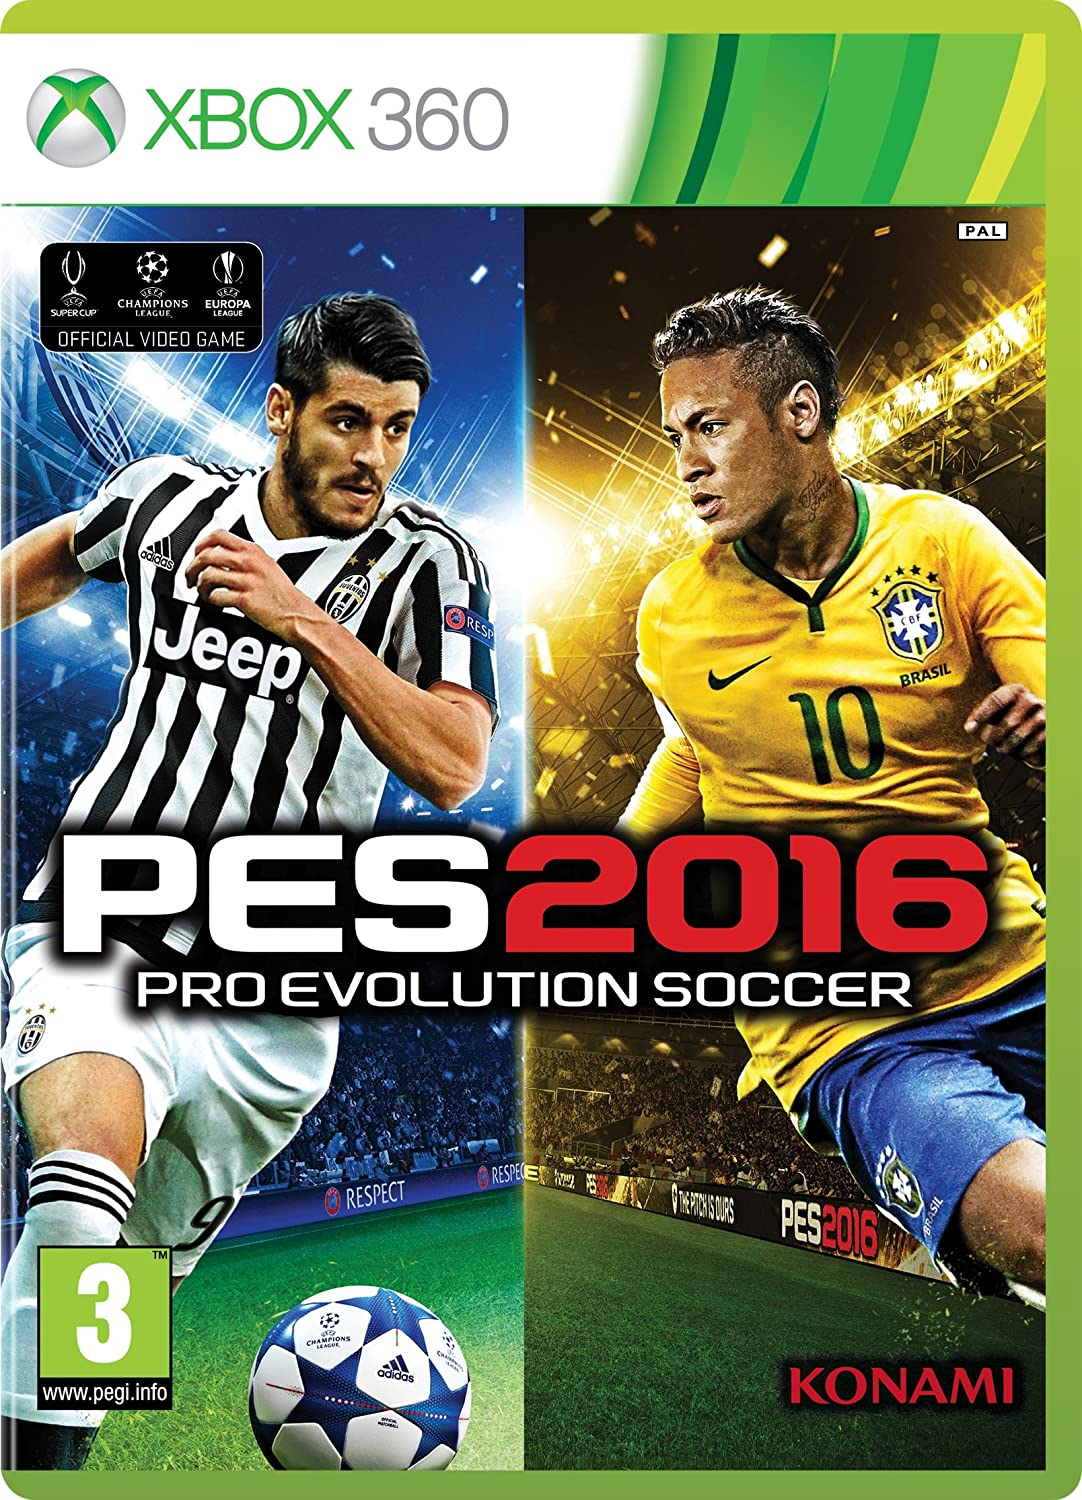 In a popularity Pro Evolution Soccer 2016 New life Xbox 360 Standard Edition